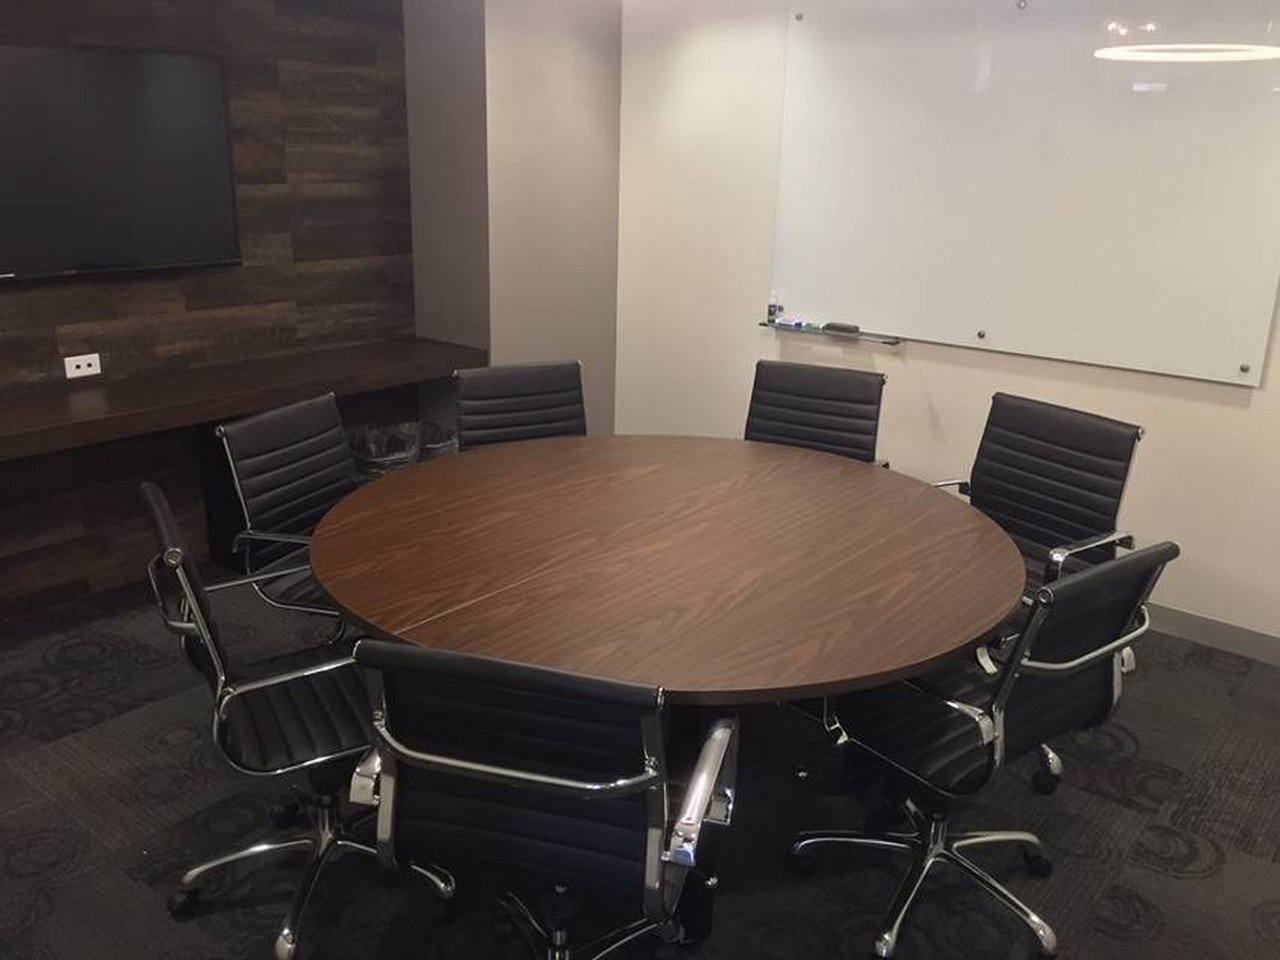 NYC conference rooms Meetingraum Corporate Suites Round Table Conference Room 20C image 0